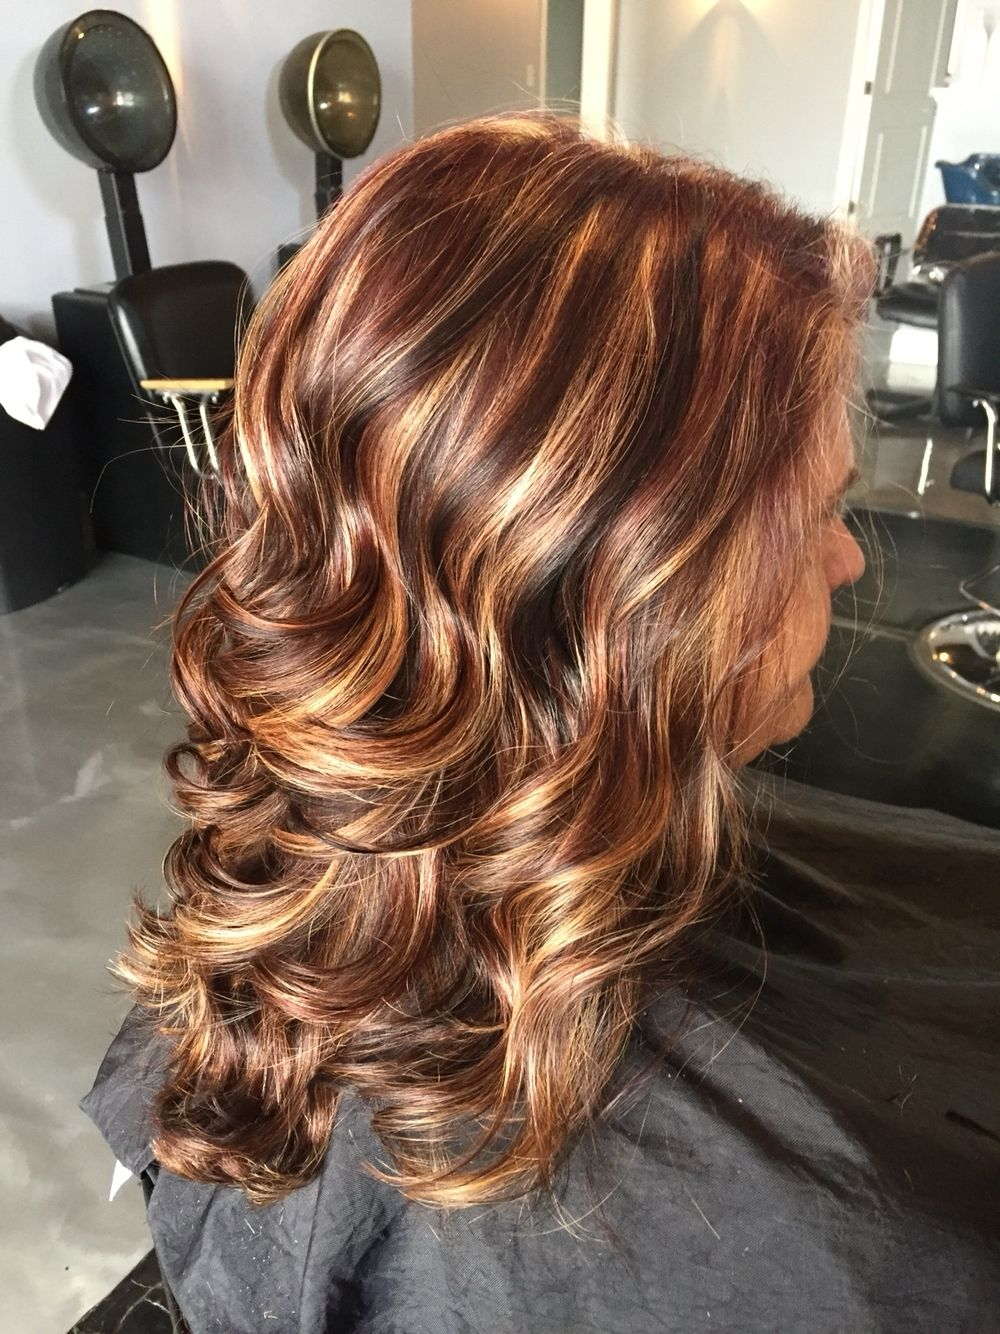 Related Image Hair Highlights And Lowlights Blonde Hair With Highlights Hair Styles